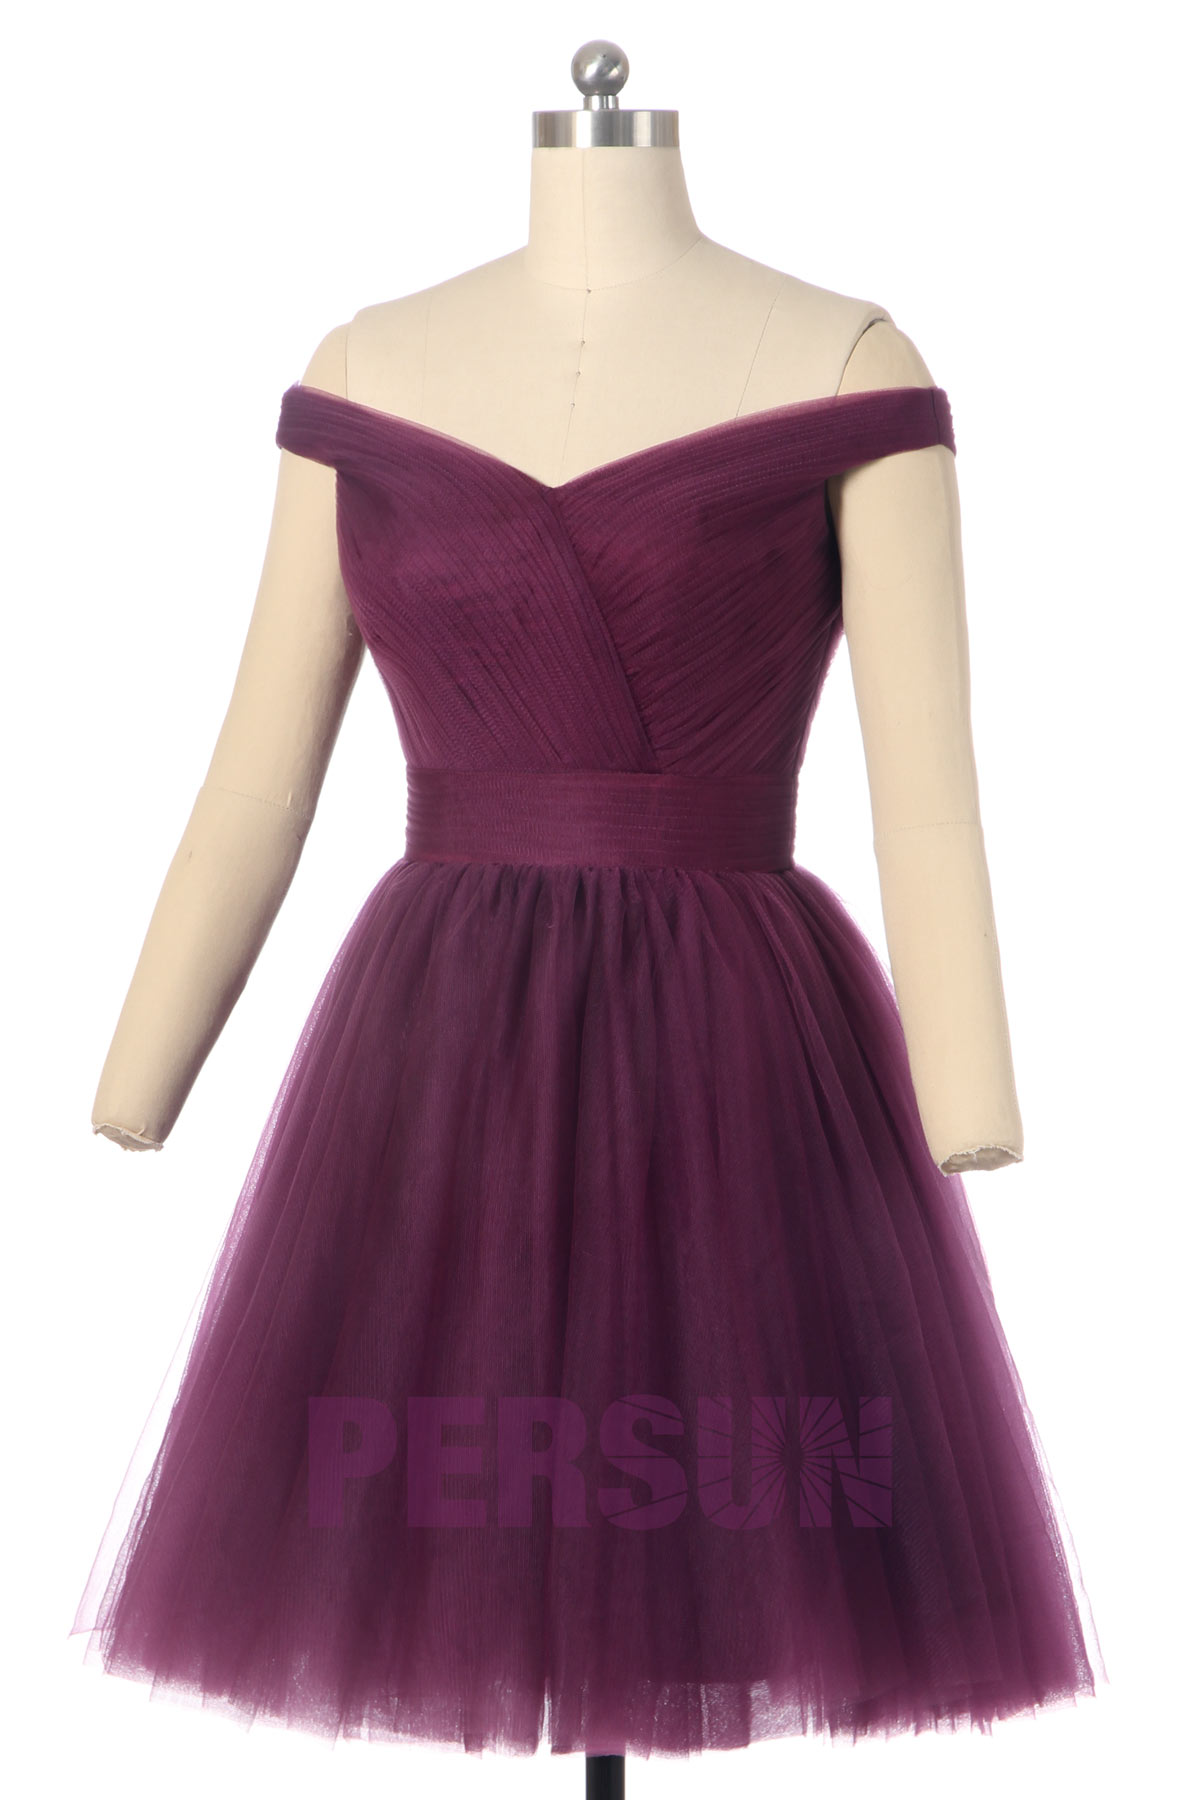 Soldes robe de cocktail prune taille 32